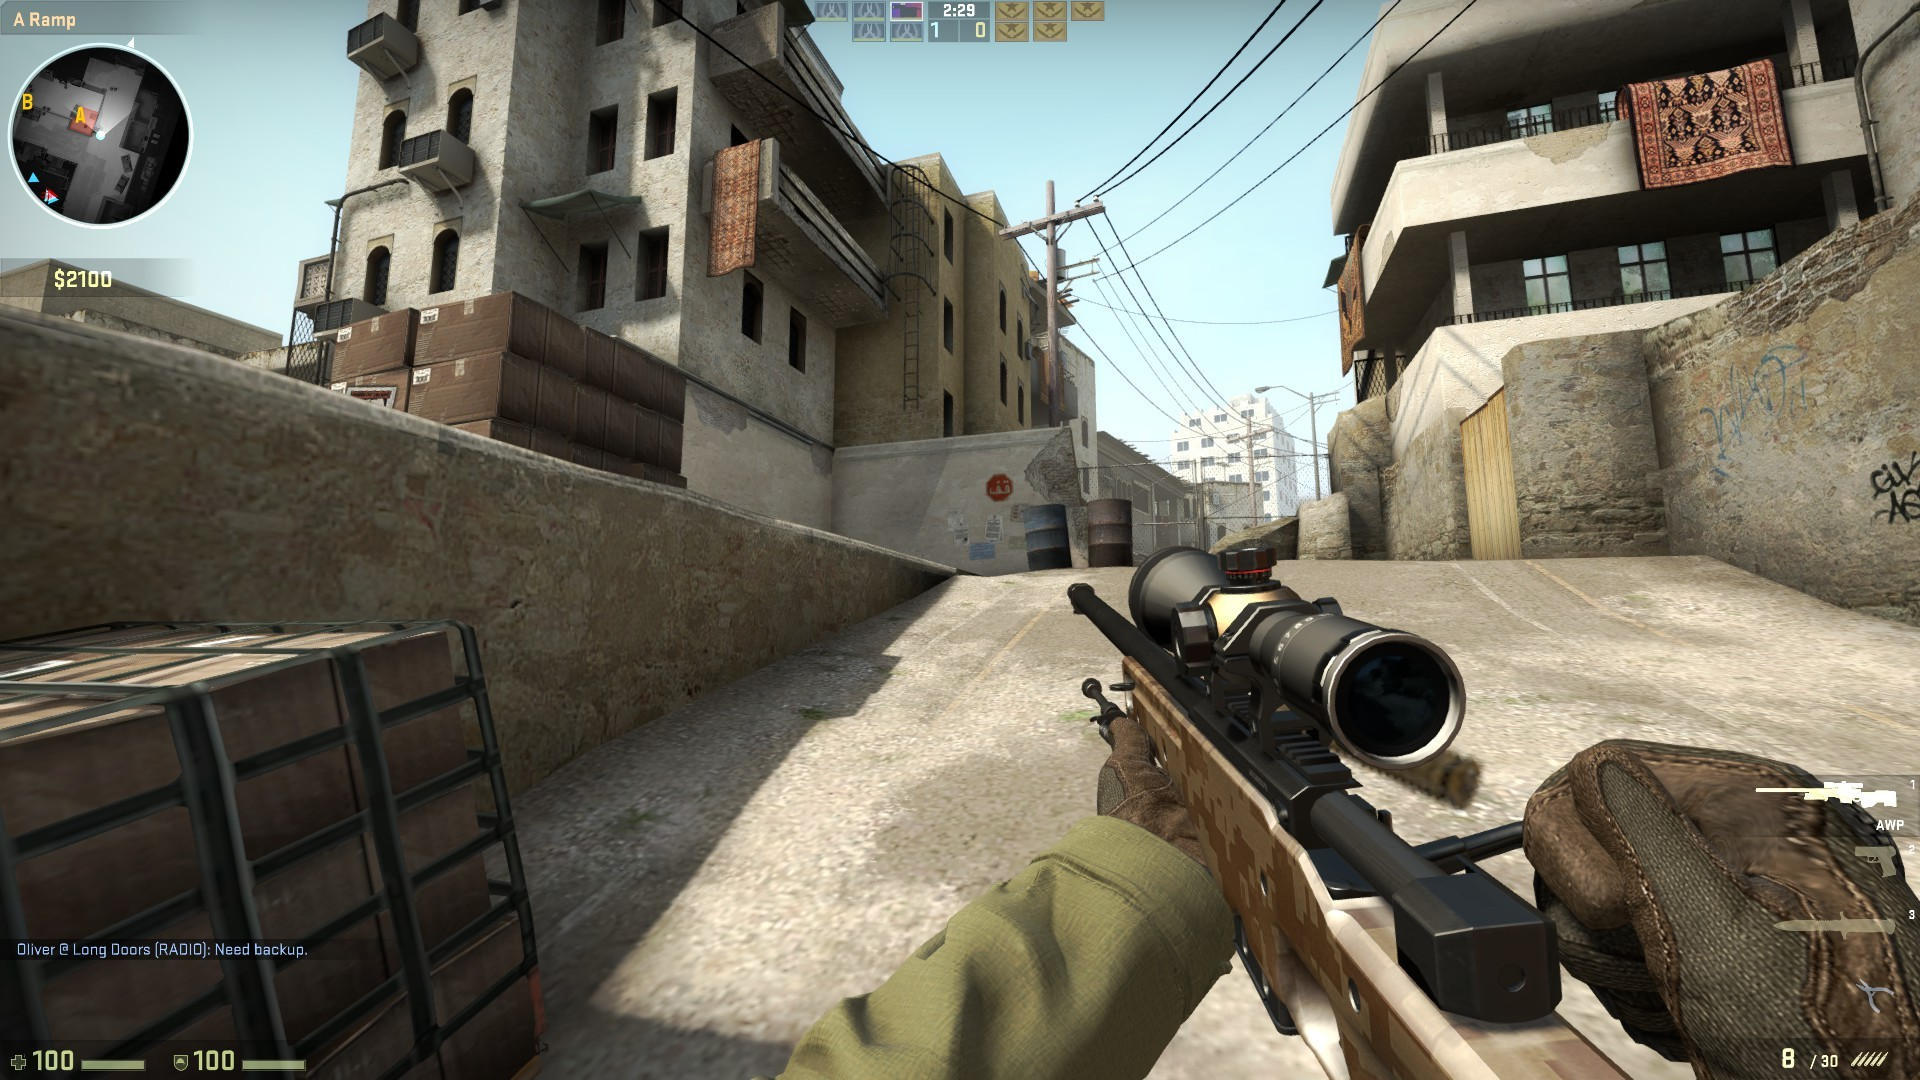 Counter-Strike: Global Offensive is one of the top e-sports games right now, and that's helping it draw an audience on Twitch.